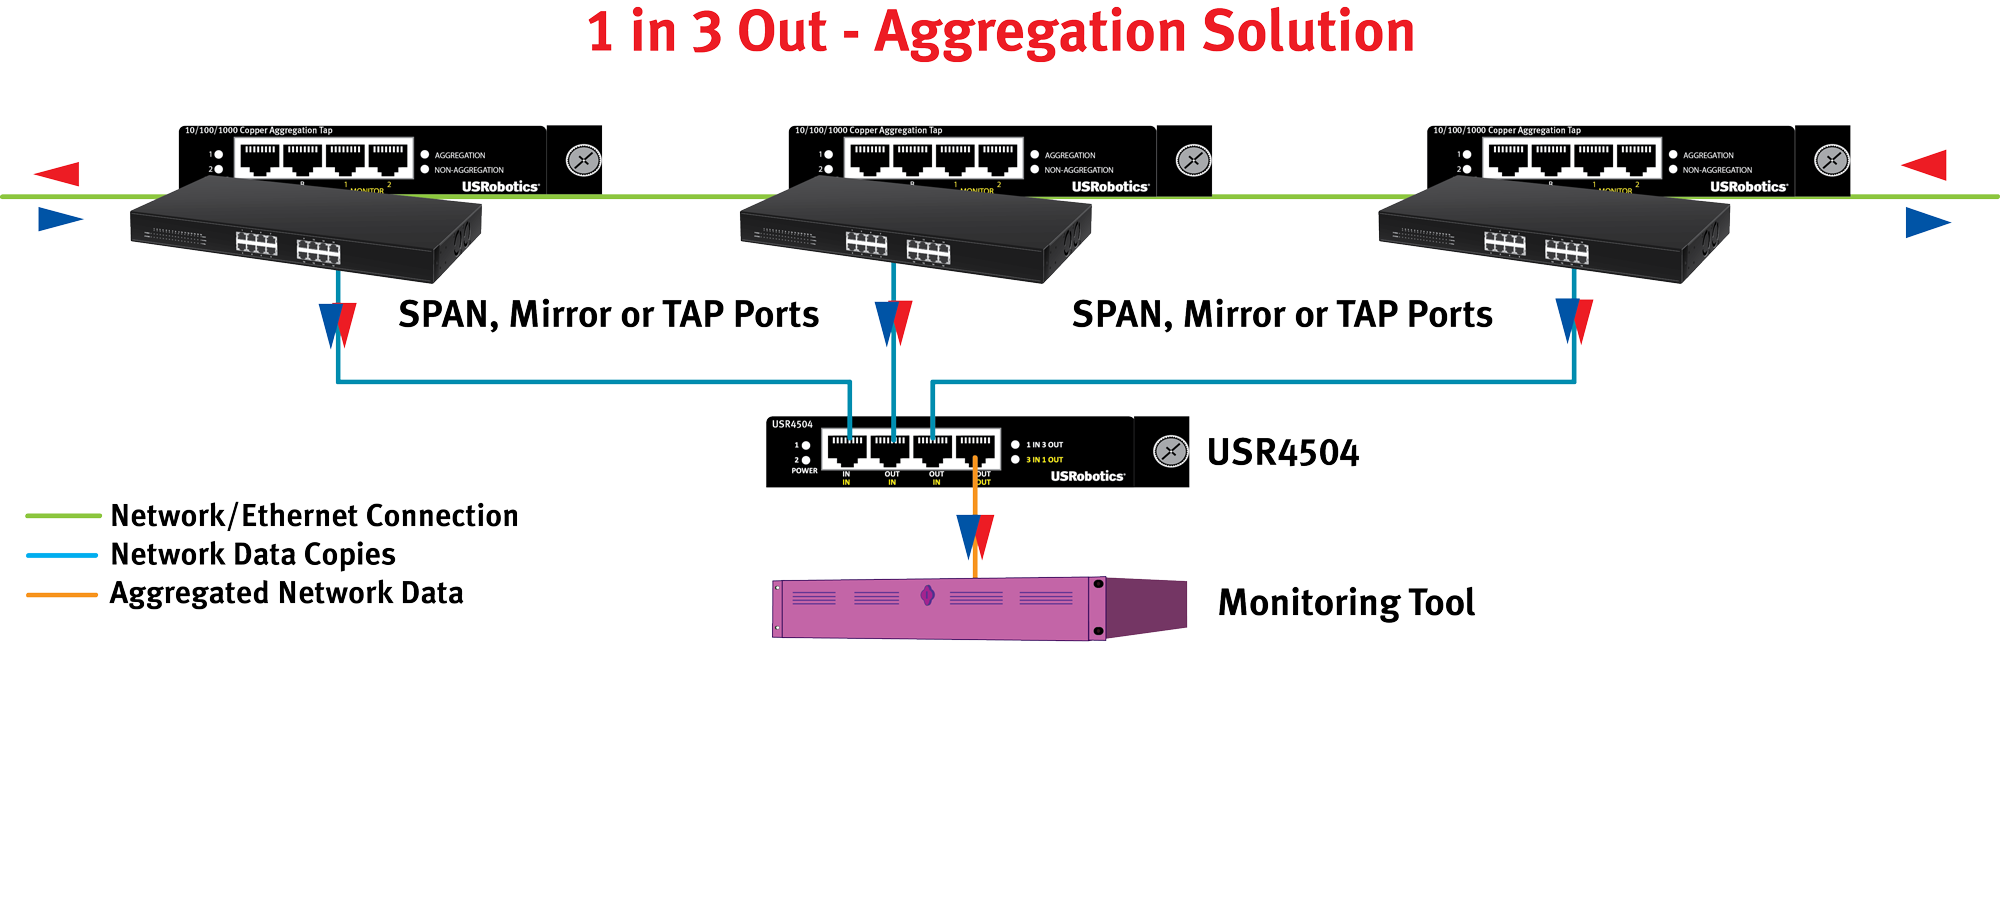 USR4504 Aggregation Application Diagram